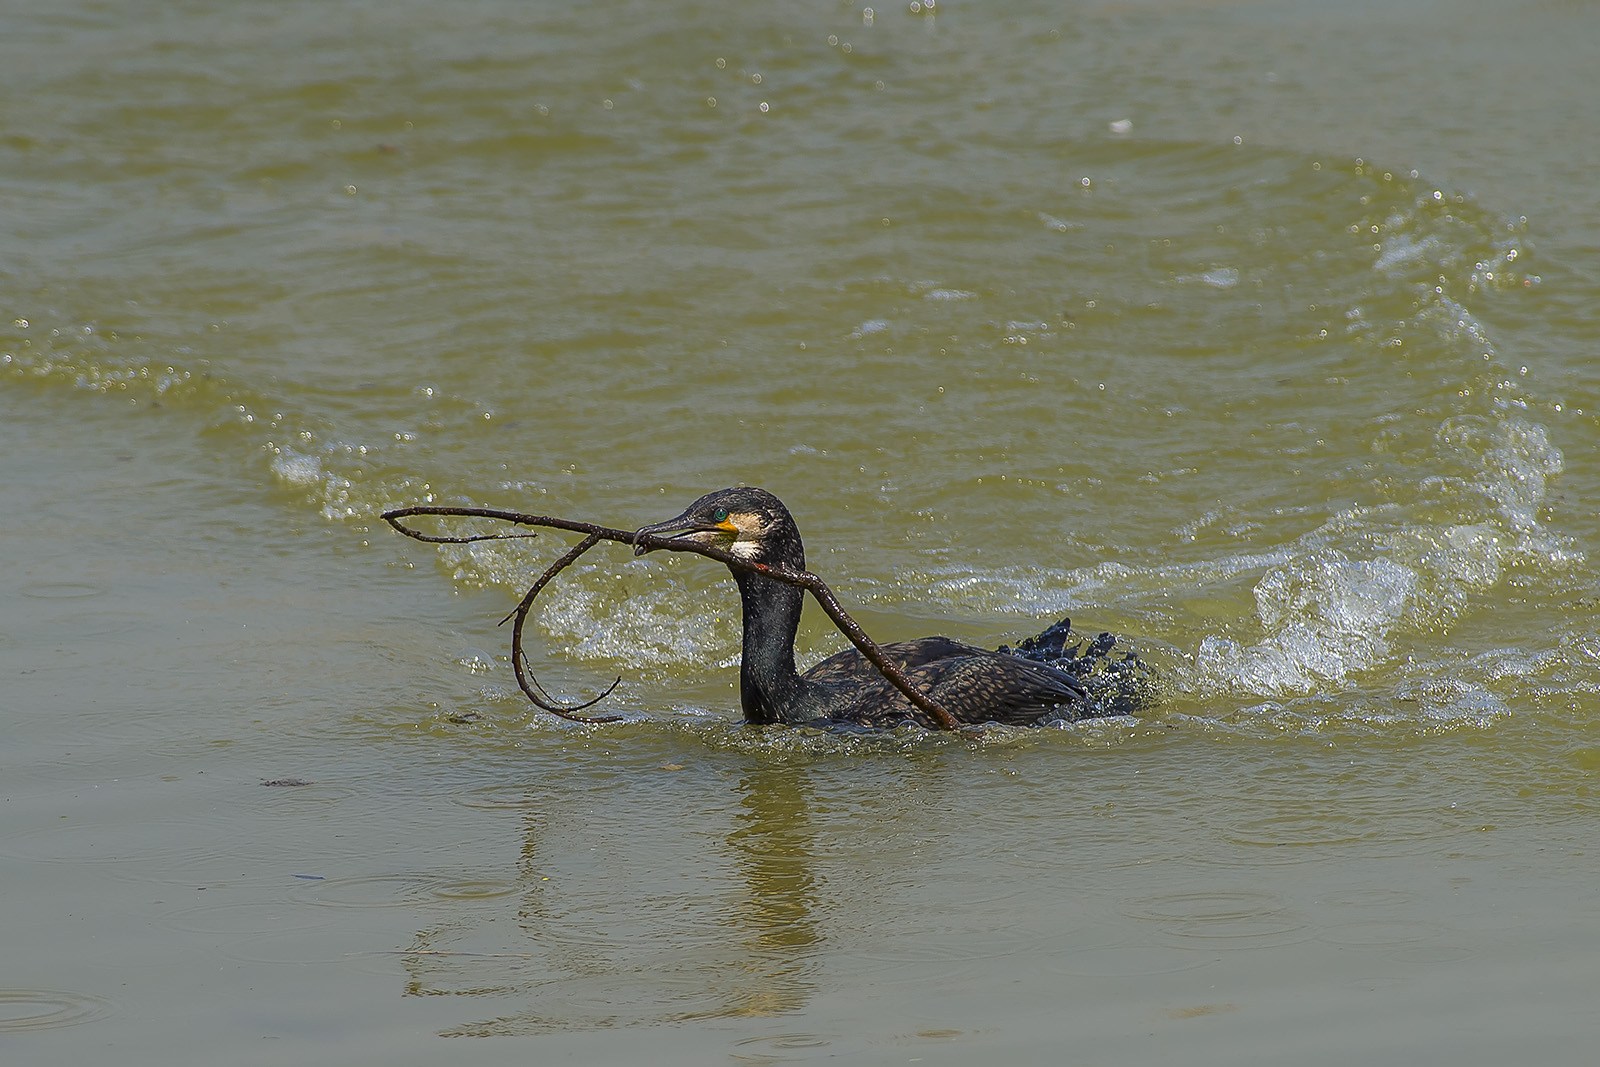 Phalacrocorax carbo – cormorano